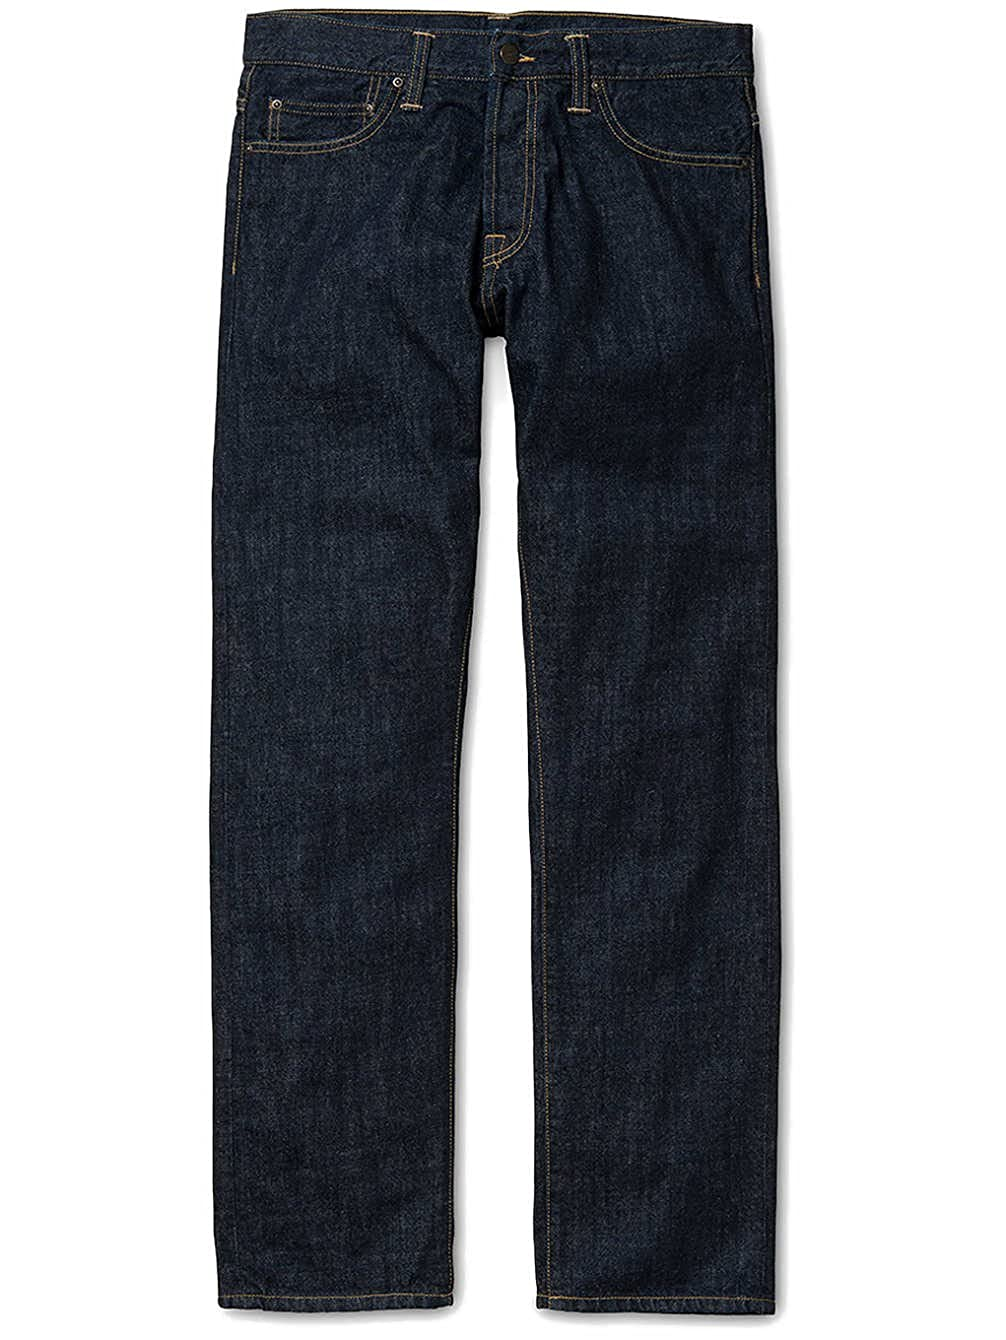 Carhartt Wip 38x34 Pantalon Blue Homme Oakland Rinsed Taille hCxtsQdr